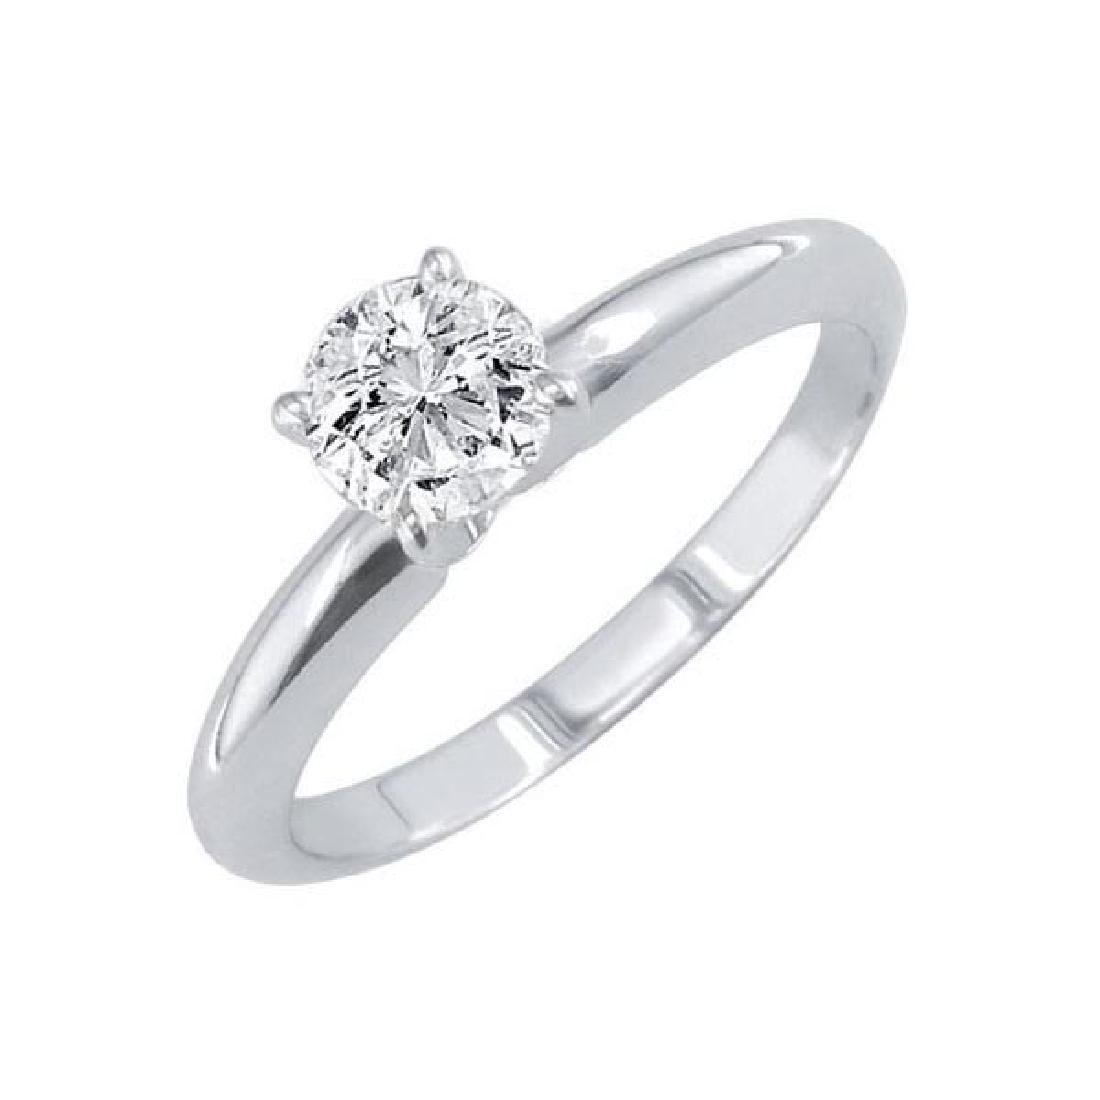 Certified 1.11 CTW Round Diamond Solitaire 14k Ring F/S